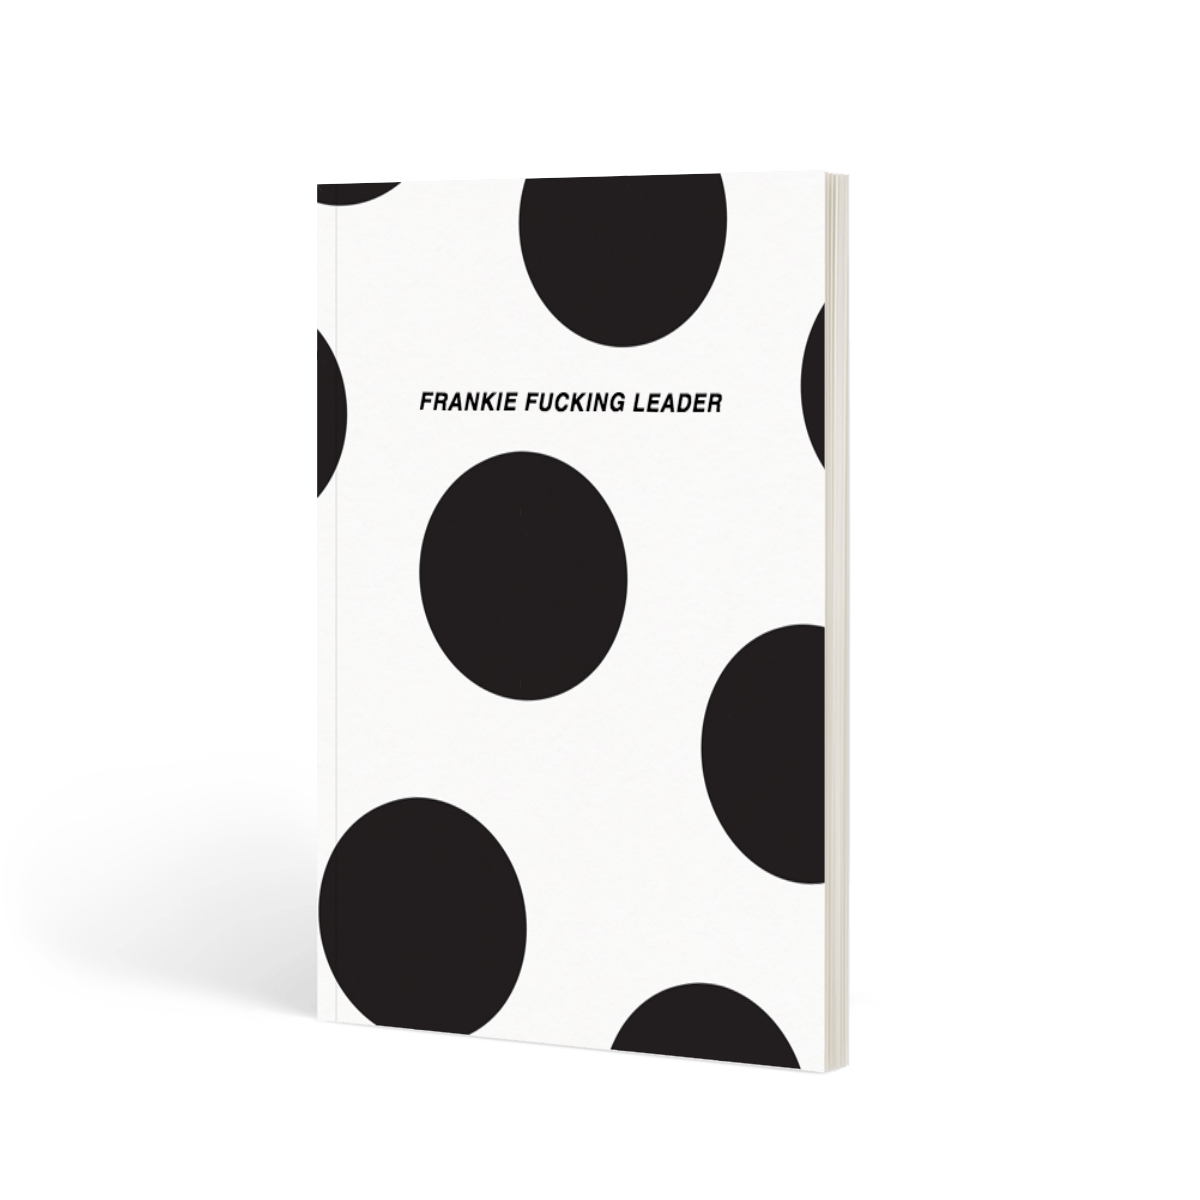 Https%3a%2f%2fwww.papier.com%2fproduct image%2f39478%2f6%2ff king polka dots 9811 front 1532962629.png?ixlib=rb 1.1